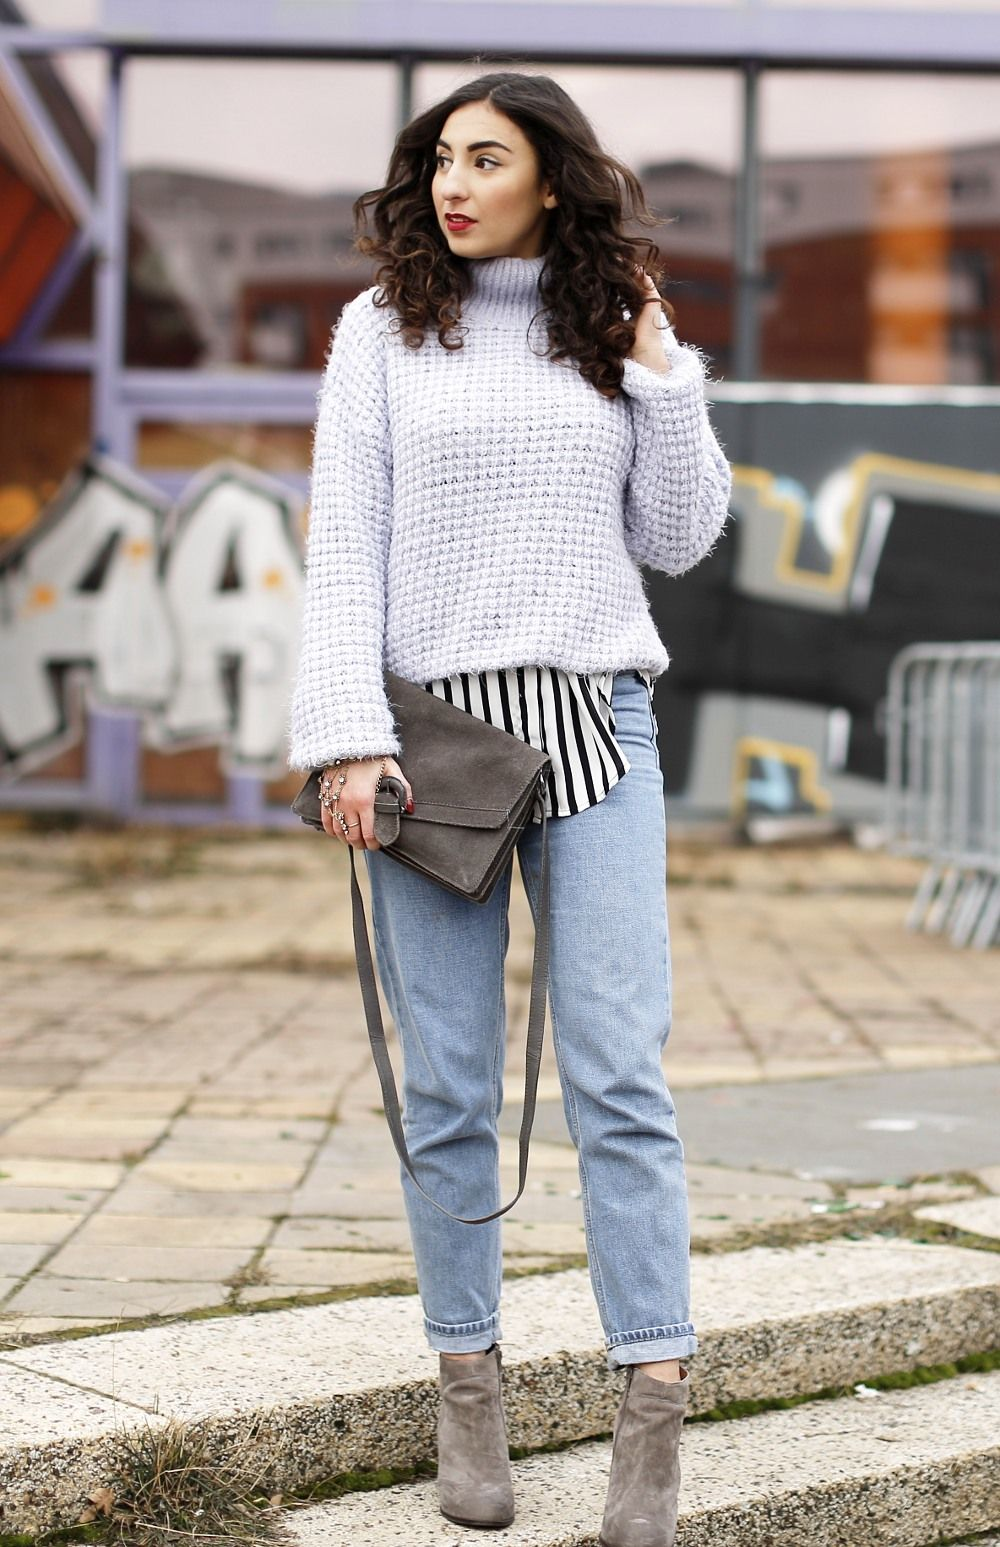 Topshop Mom Jeans | Mode, Outfit nacht und Date outfit lässig